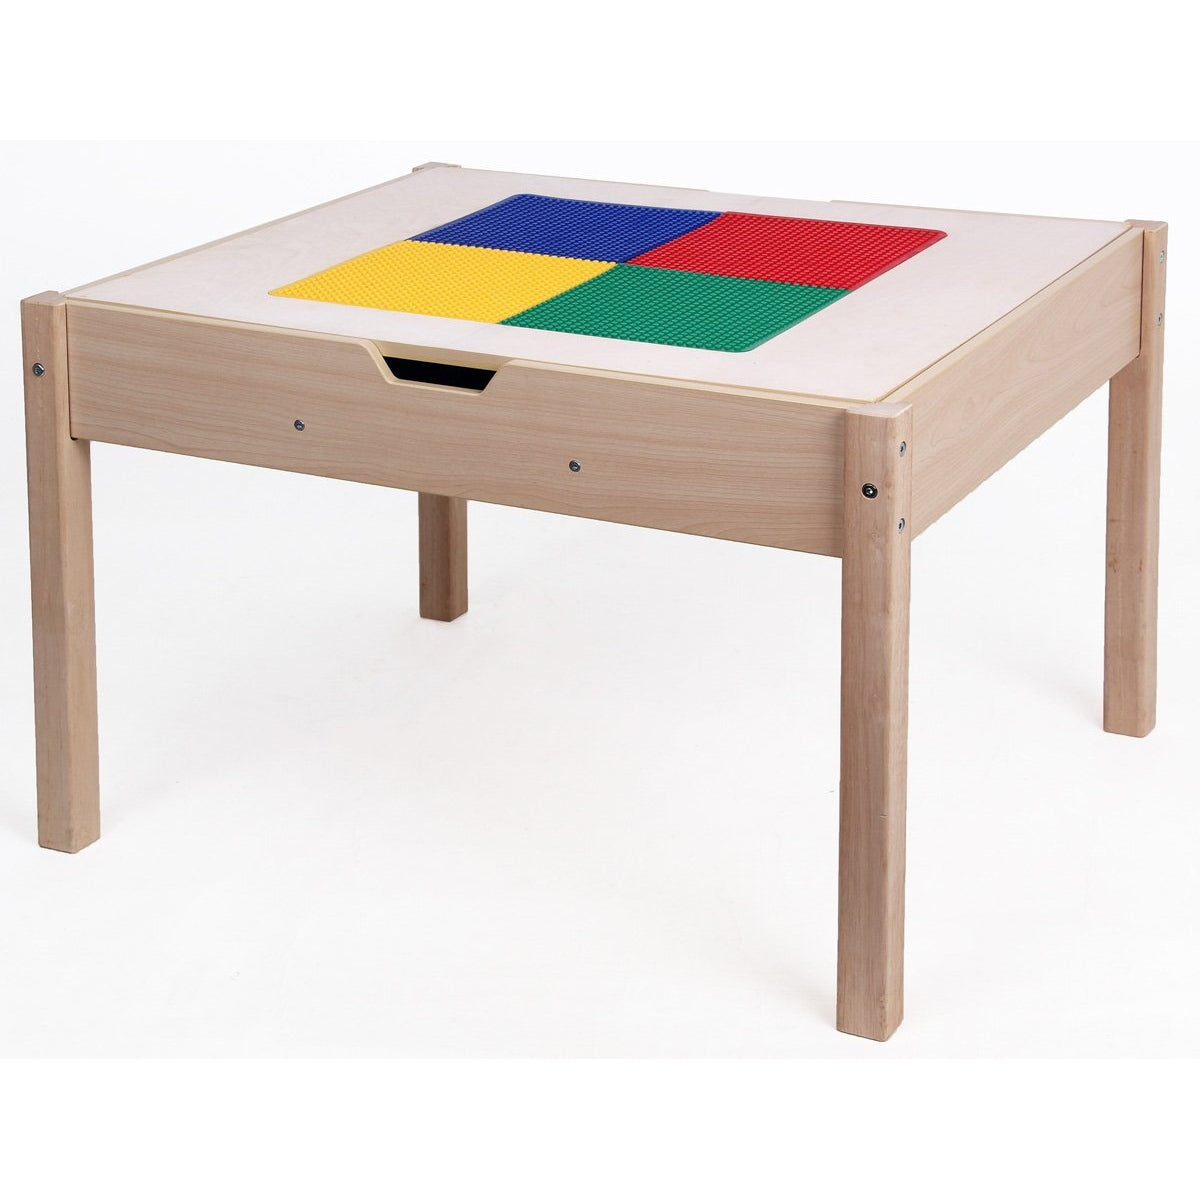 Tender Leaf Toys Play Table with Building Base